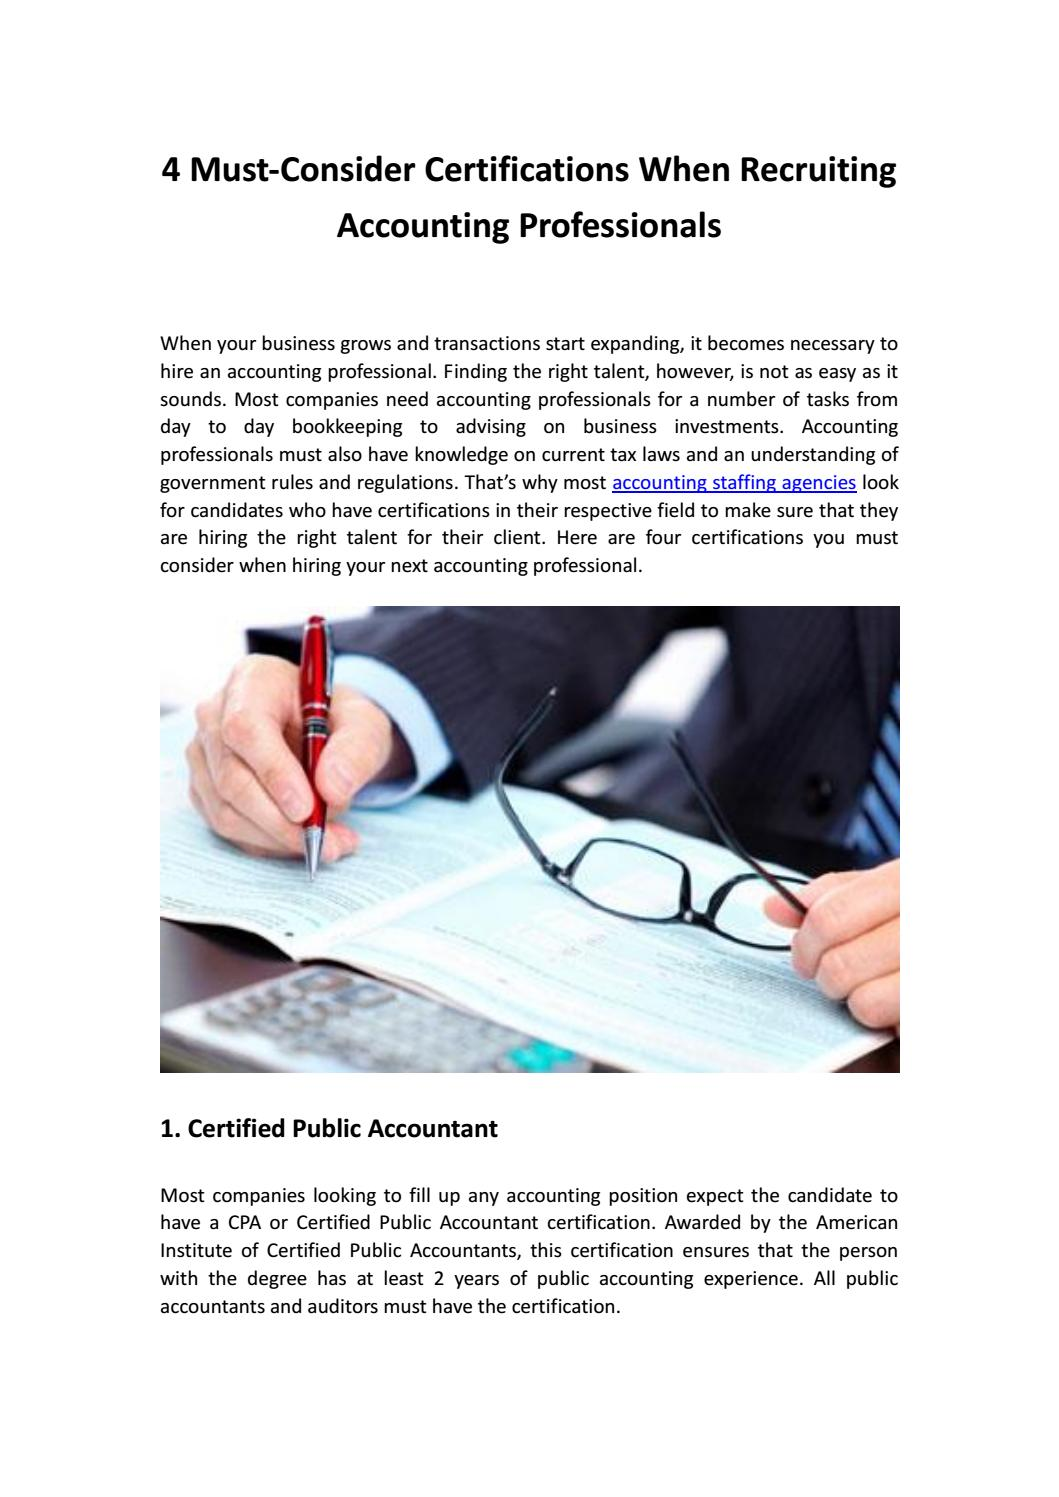 4 must consider certifications when recruiting accounting 4 must consider certifications when recruiting accounting professionals by sherries simmons issuu xflitez Images